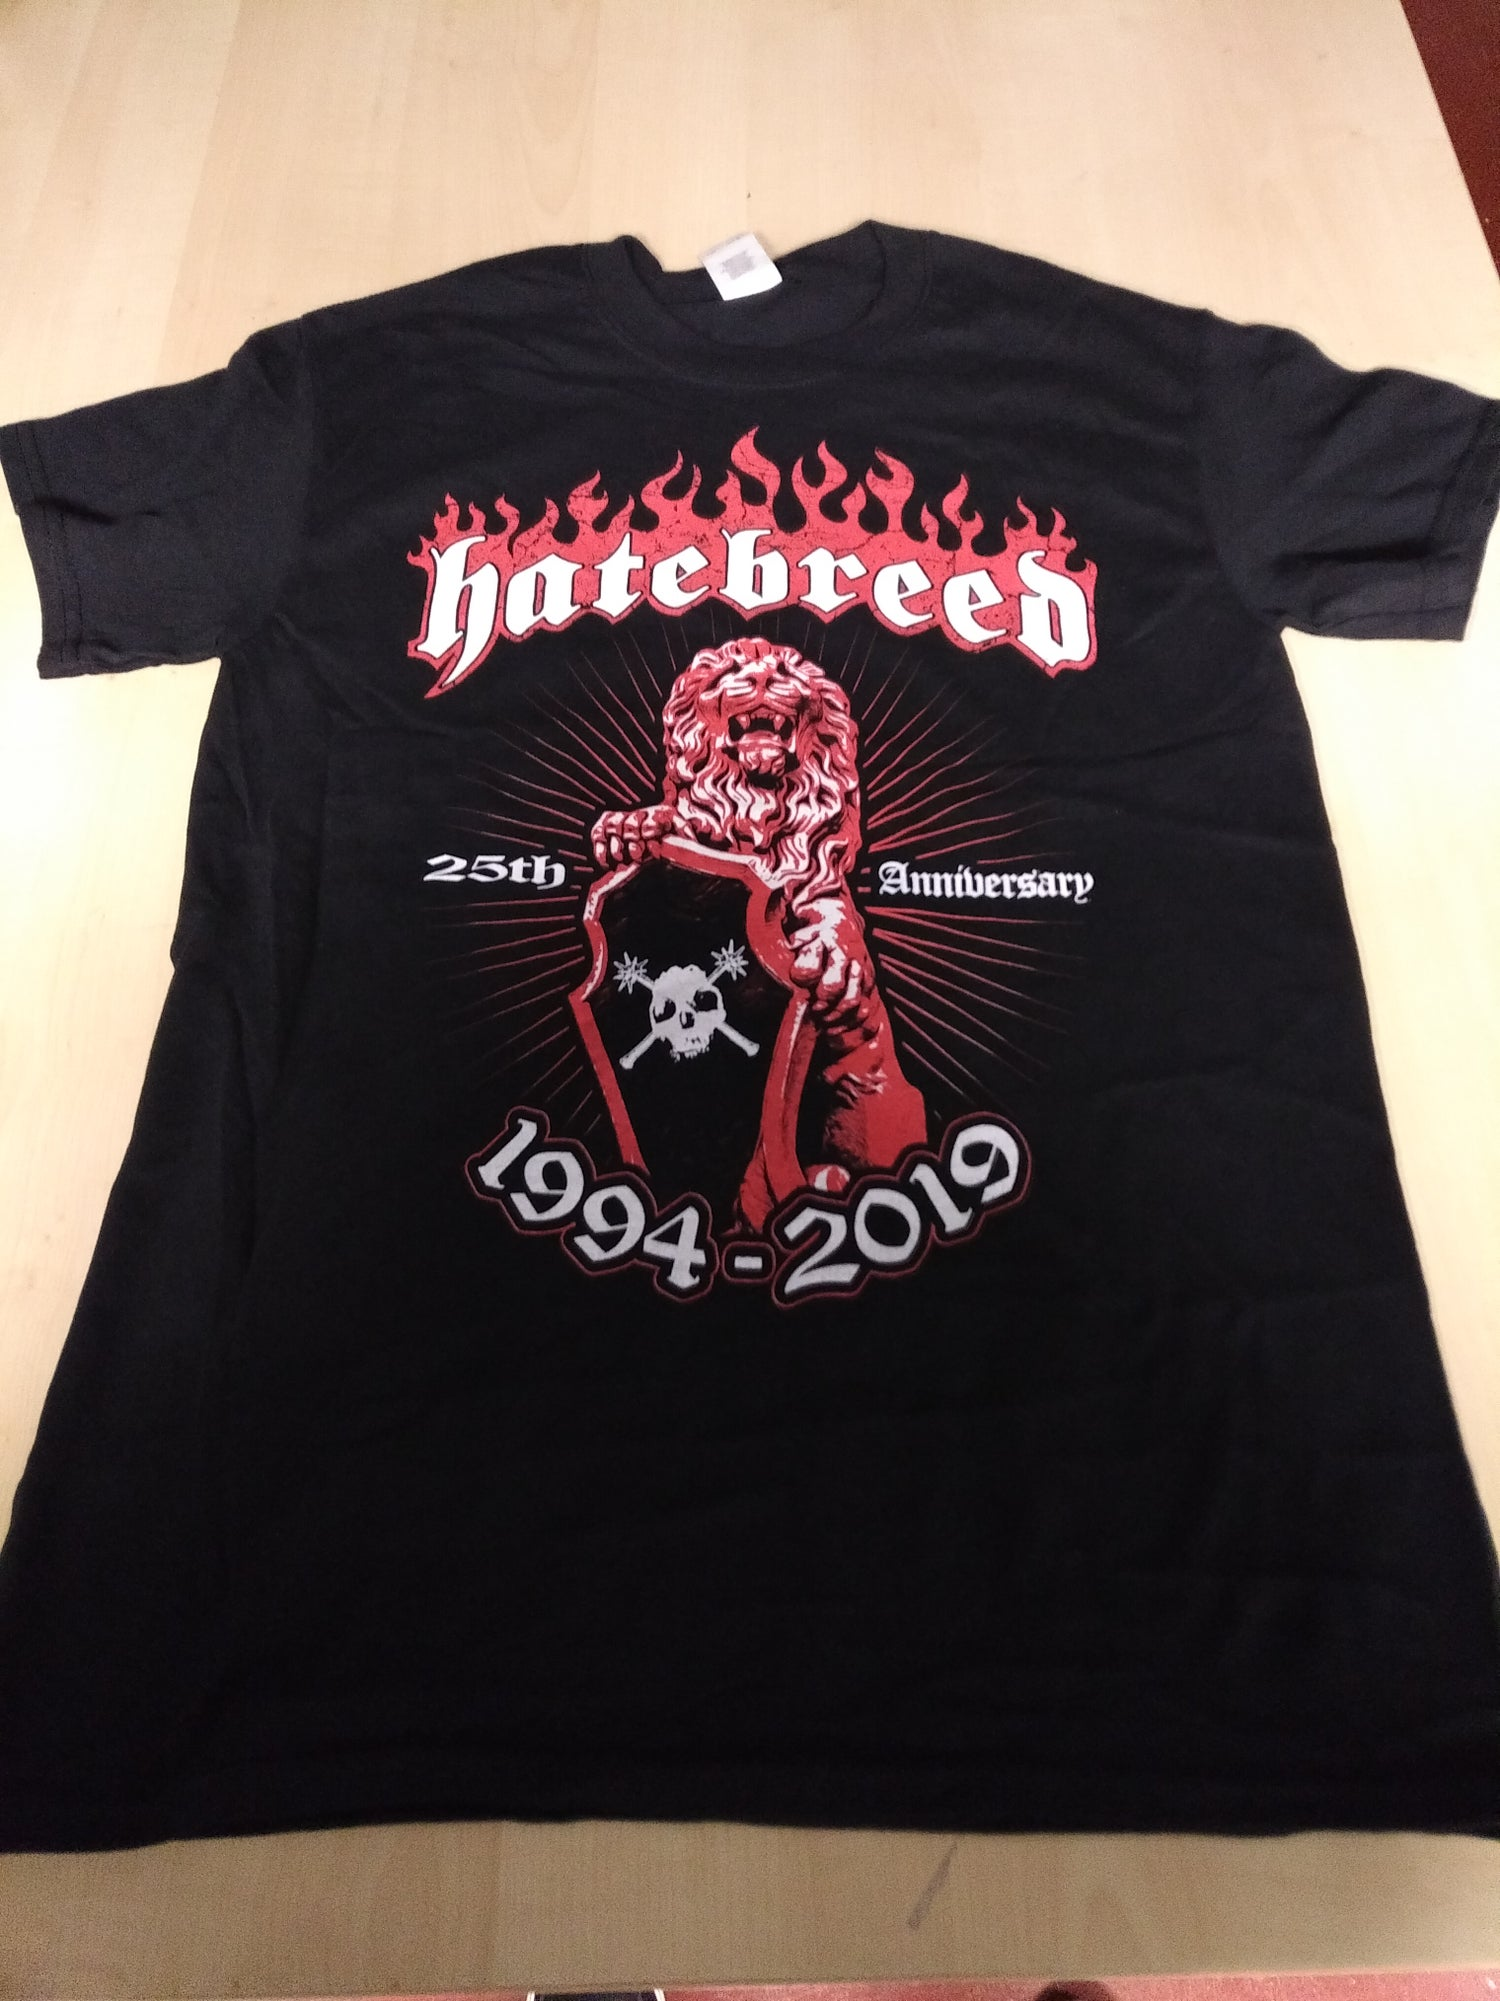 Image of HATEBREED 2019 25TH ANNIVERSARY TOUR SHIRT - SIZE SMALL ONLY